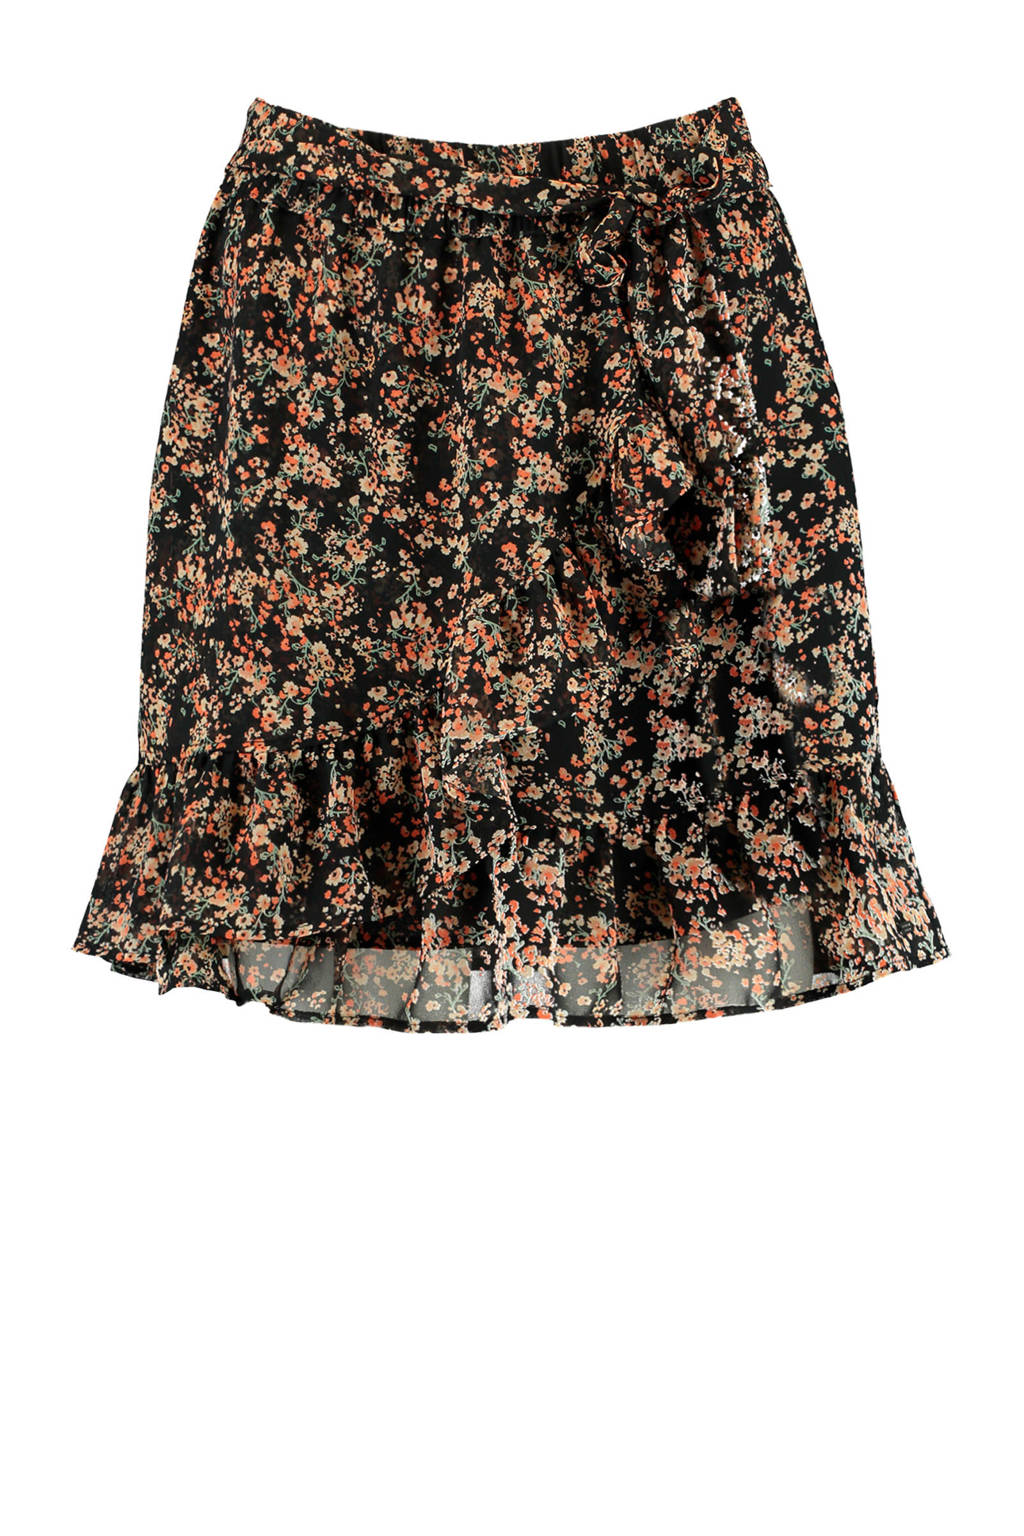 America Today gebloemde rok Rose-Ann flower black, Flower black